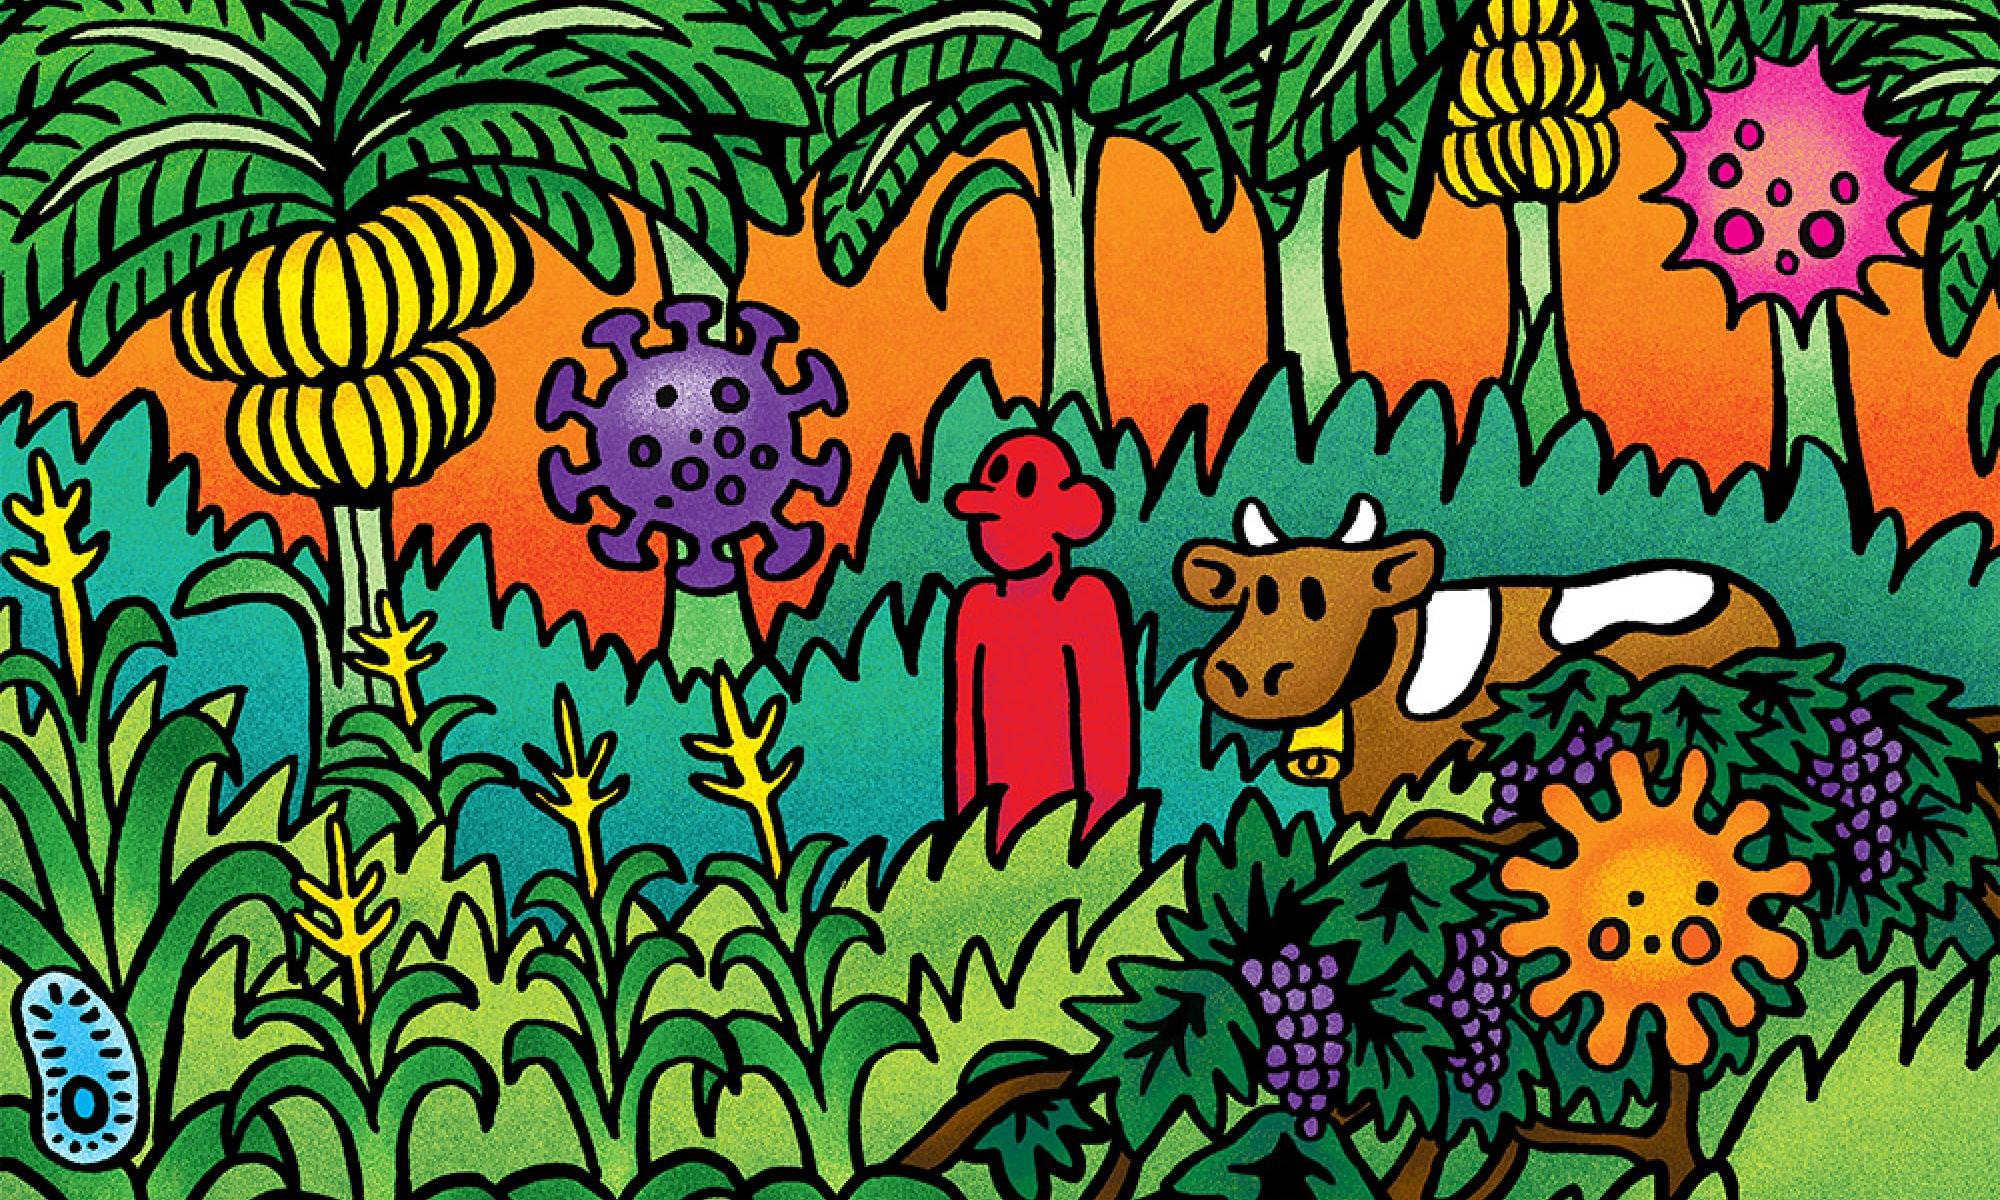 Illustration of a person with a cow surrounded by banana trees and corn